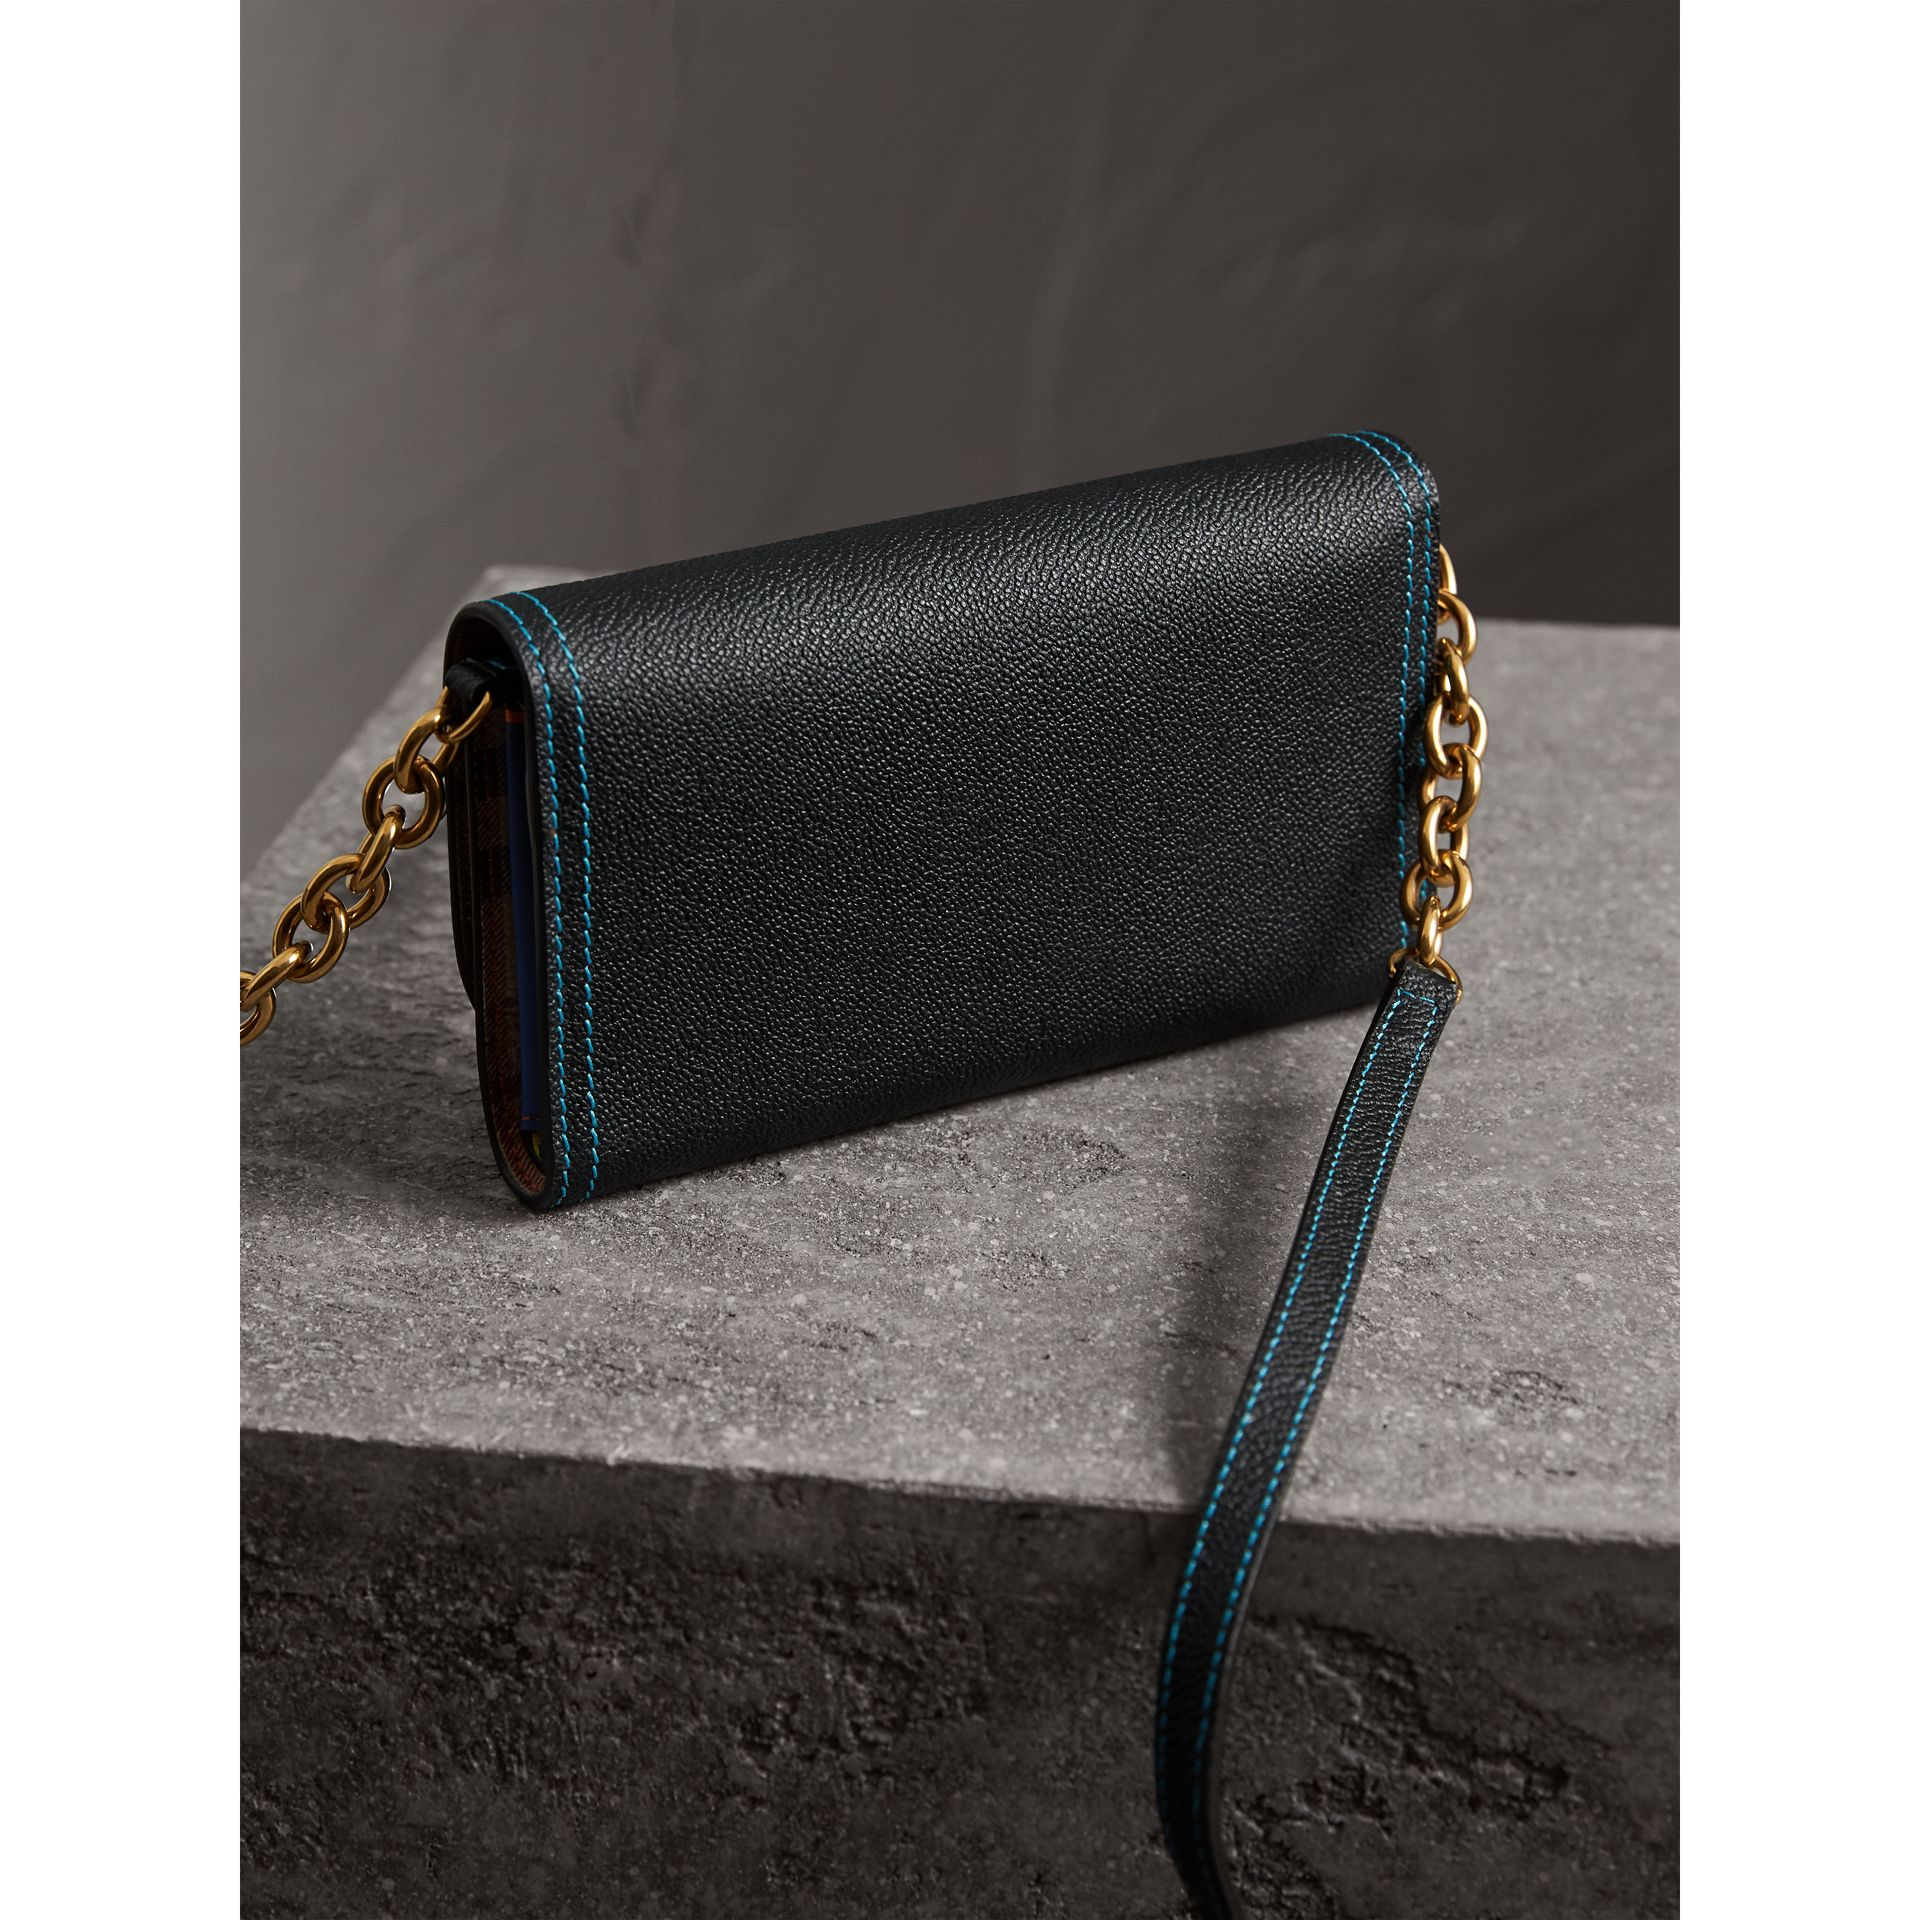 Topstitch Detail Leather Wallet with Detachable Strap in Black/multicolour - Women | Burberry - gallery image 3